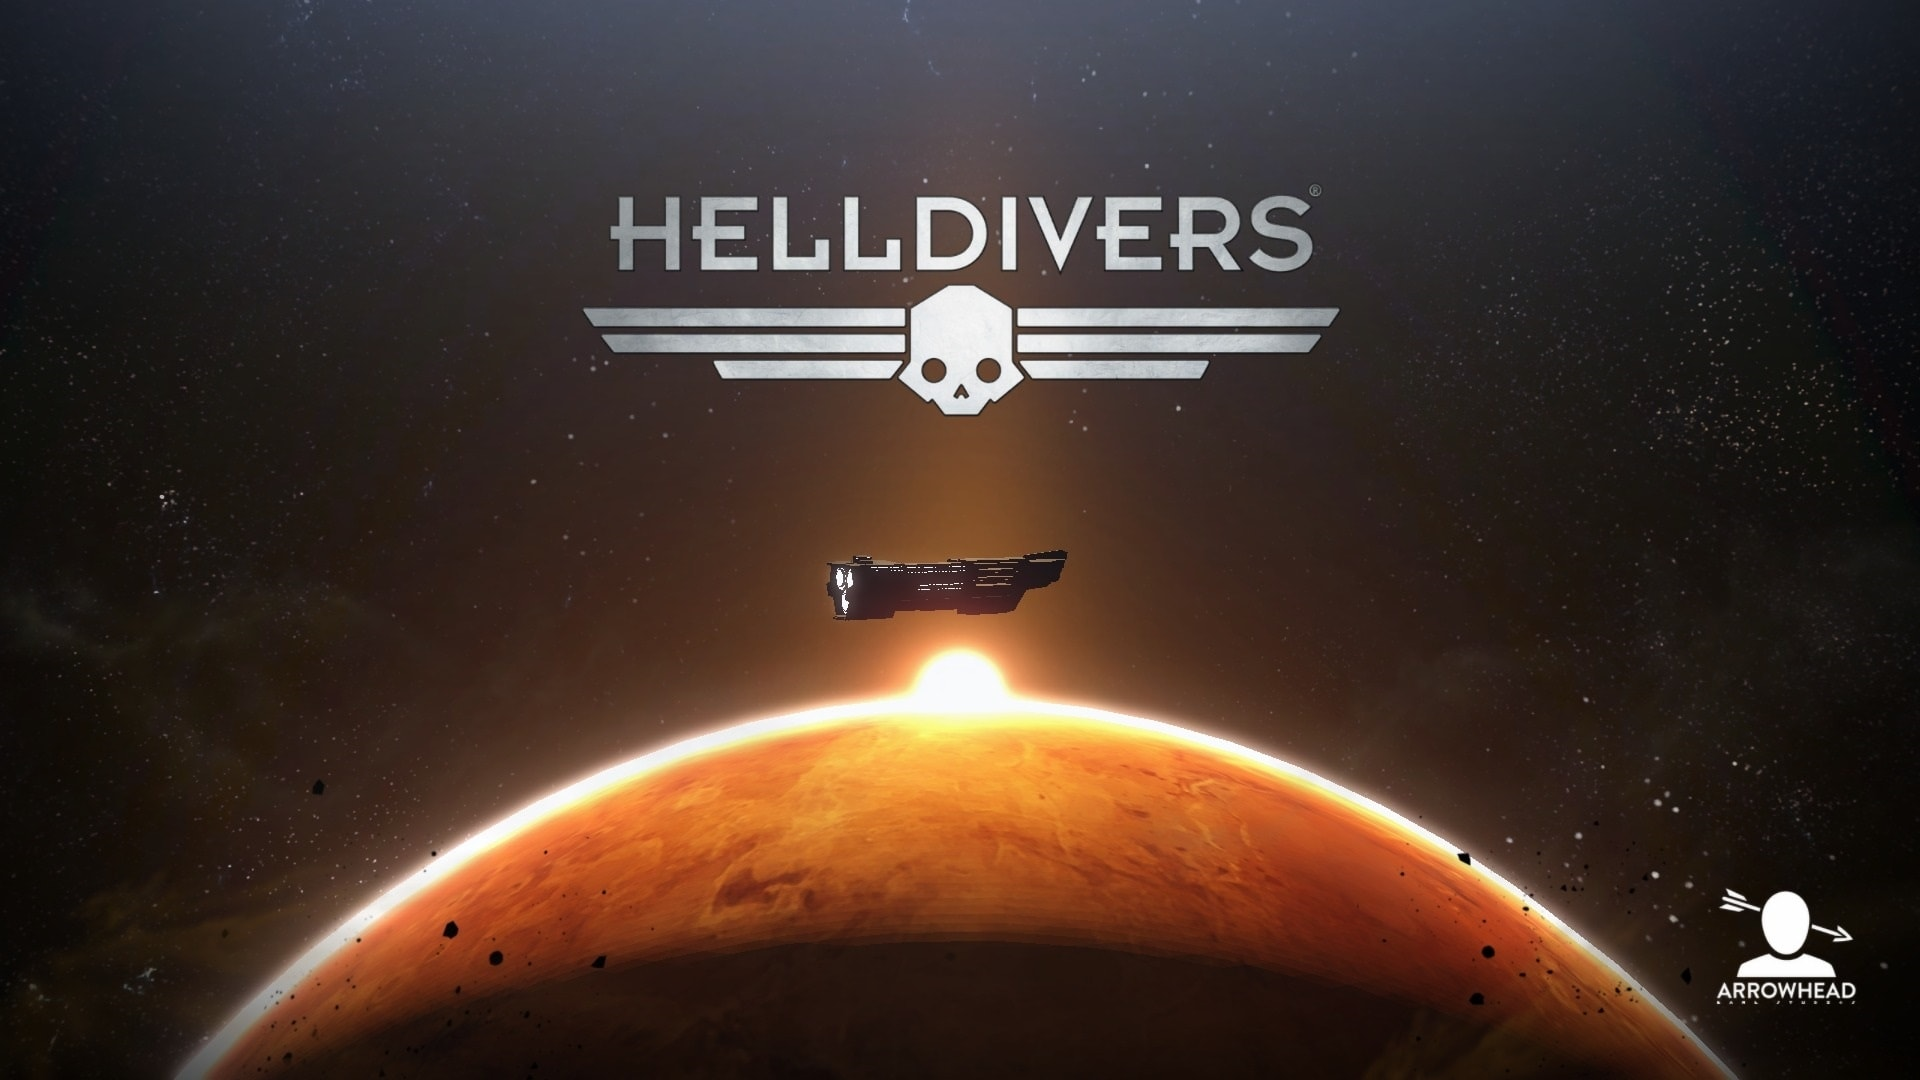 Helldivers Background